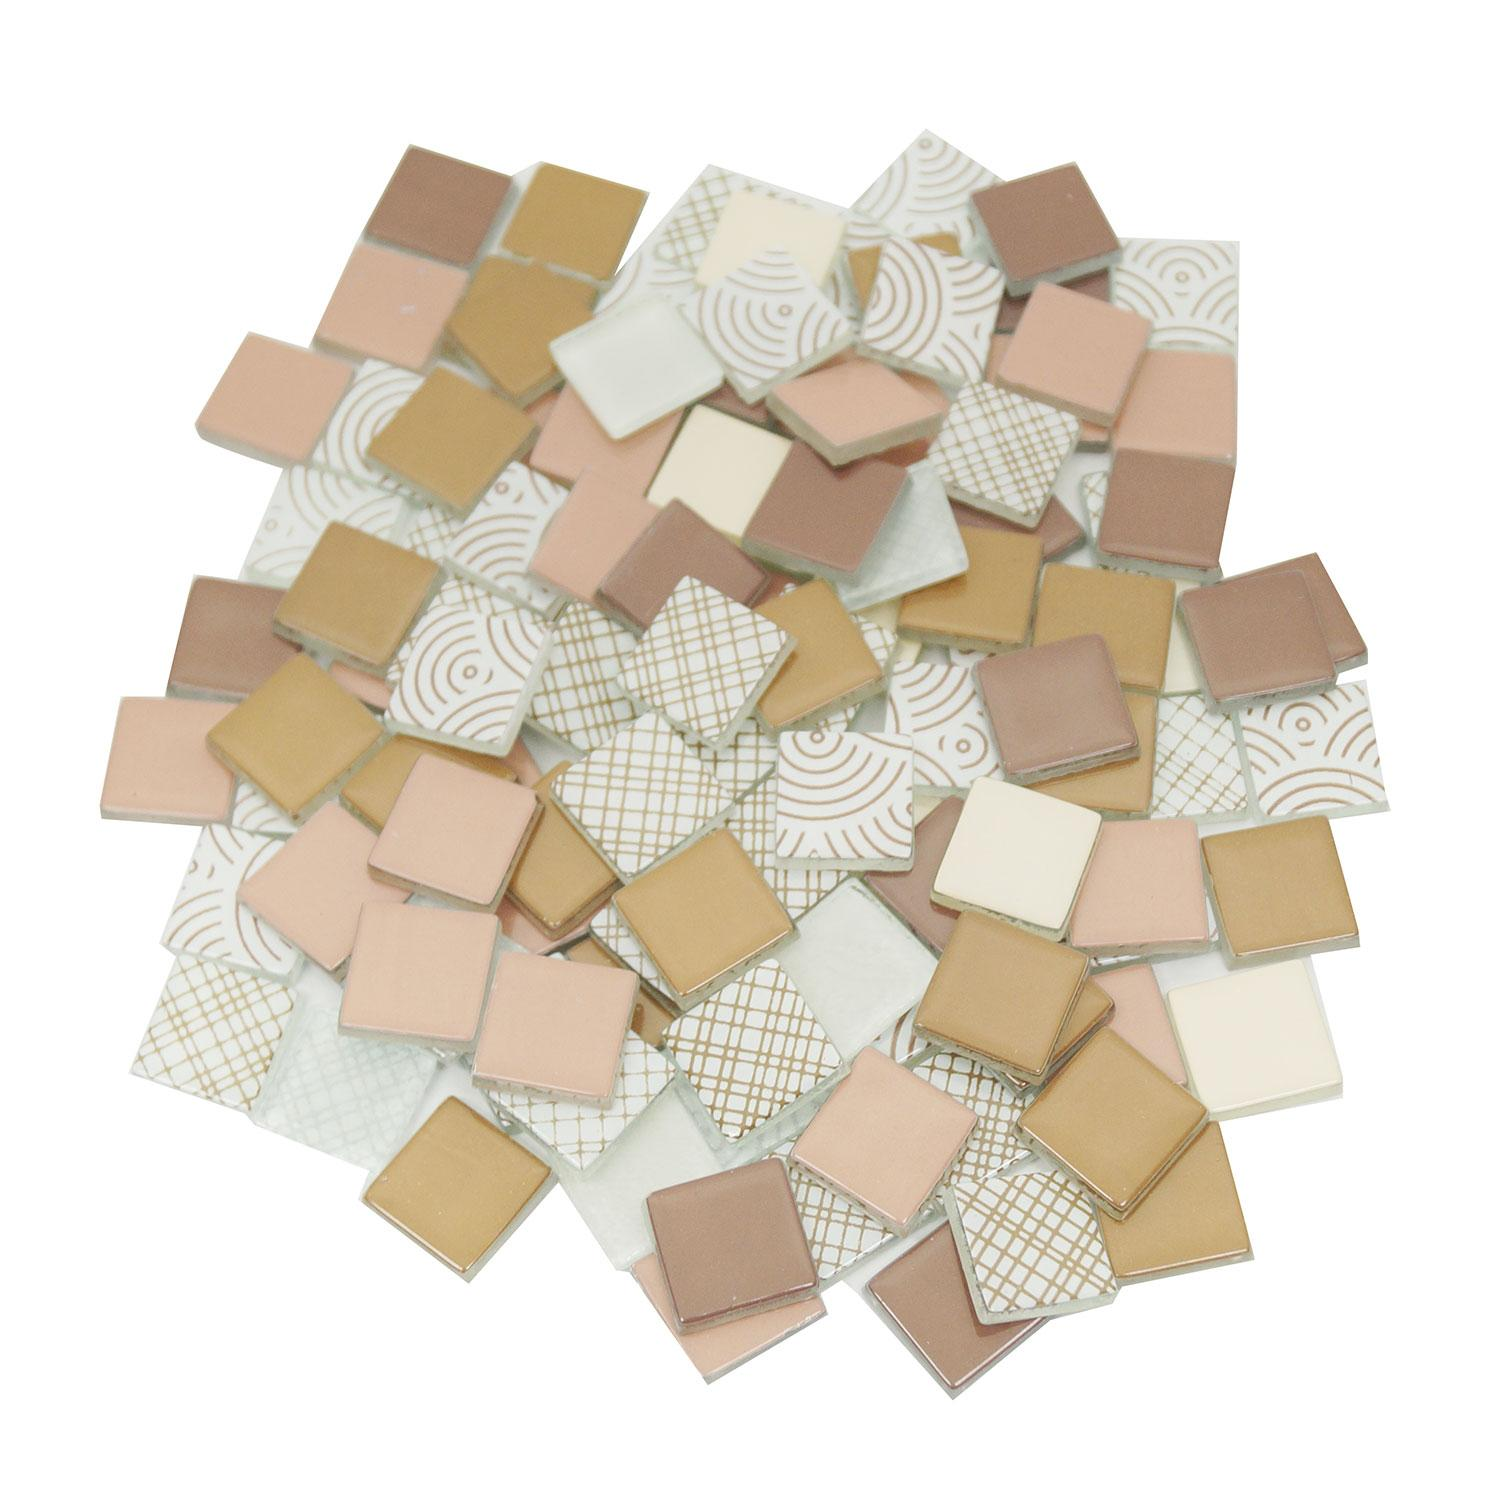 3/4 Maroon and Tan Glass Tile Assortment - 1 lb